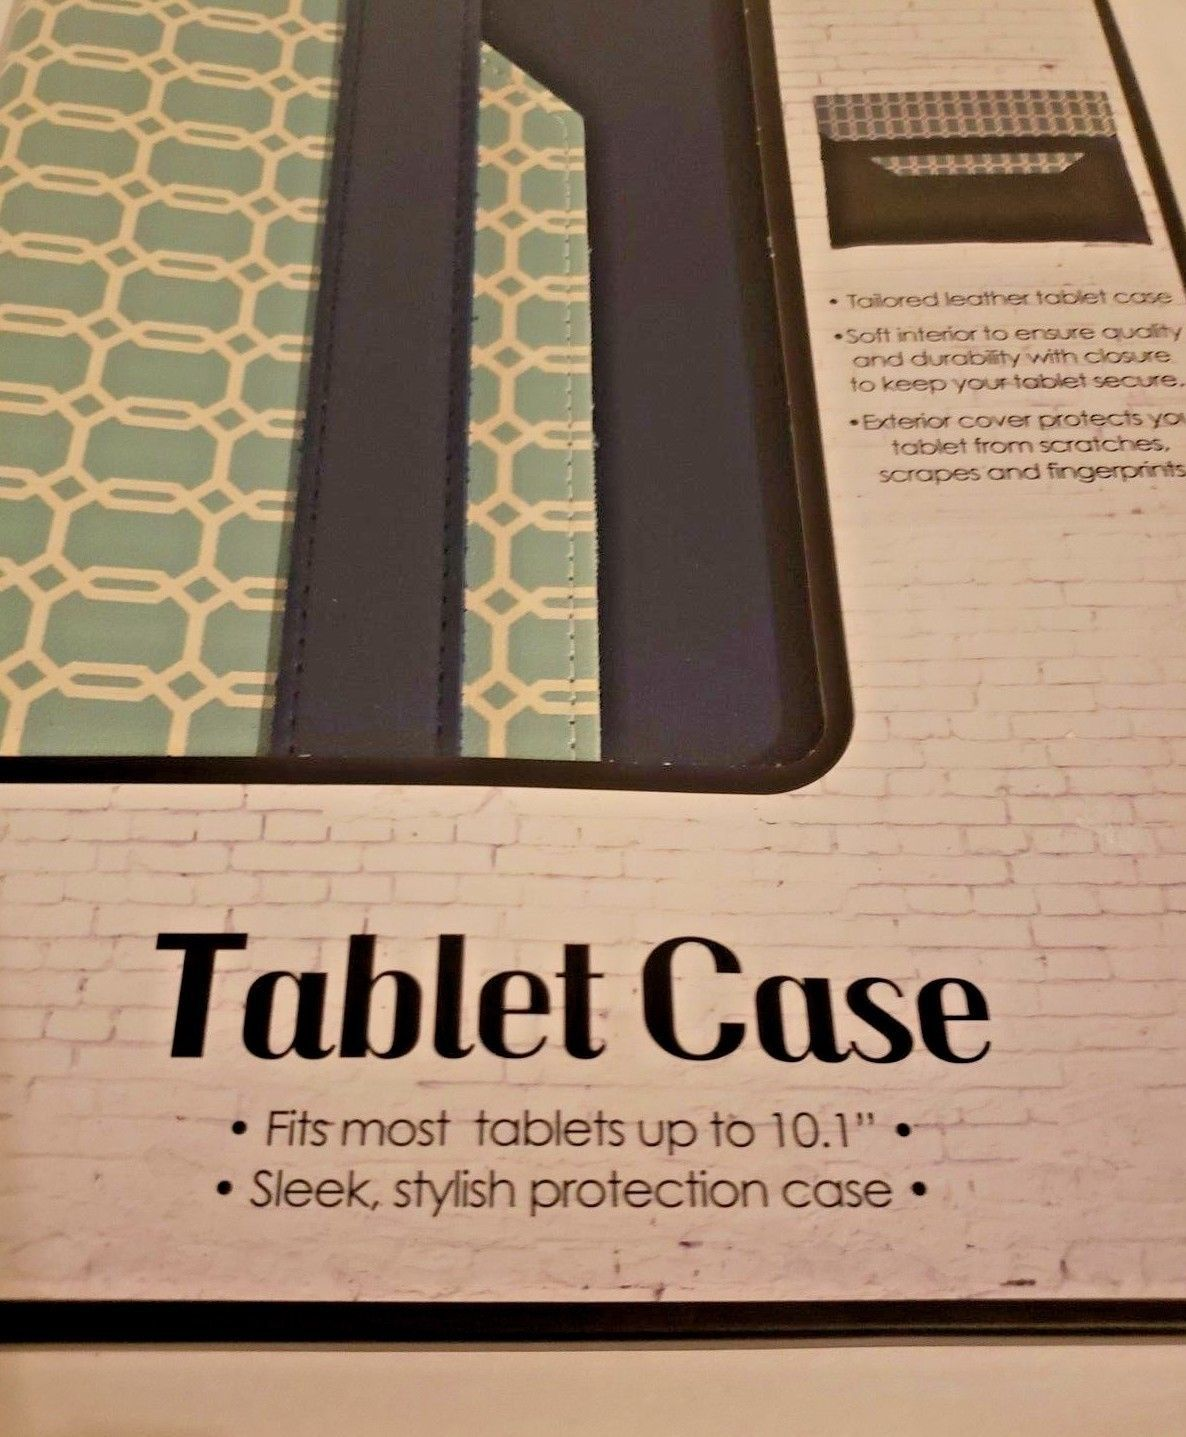 """Tailored Leather Tablet Case Fits Up To 10.1"""" (Teal and Dark Blue) image 2"""